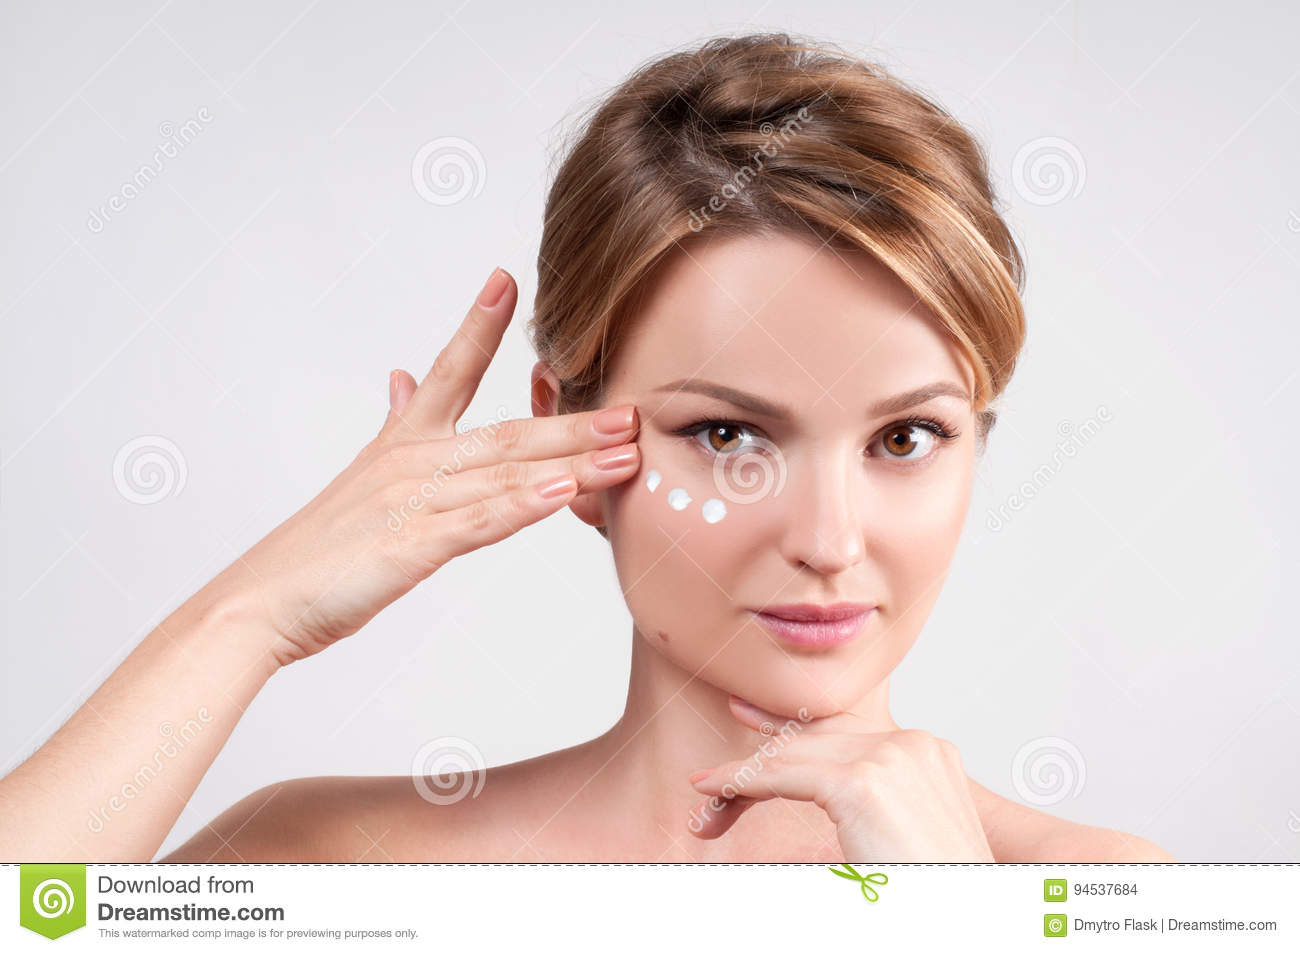 Beauty and skincare concept. Young woman applying moisturizer on face.